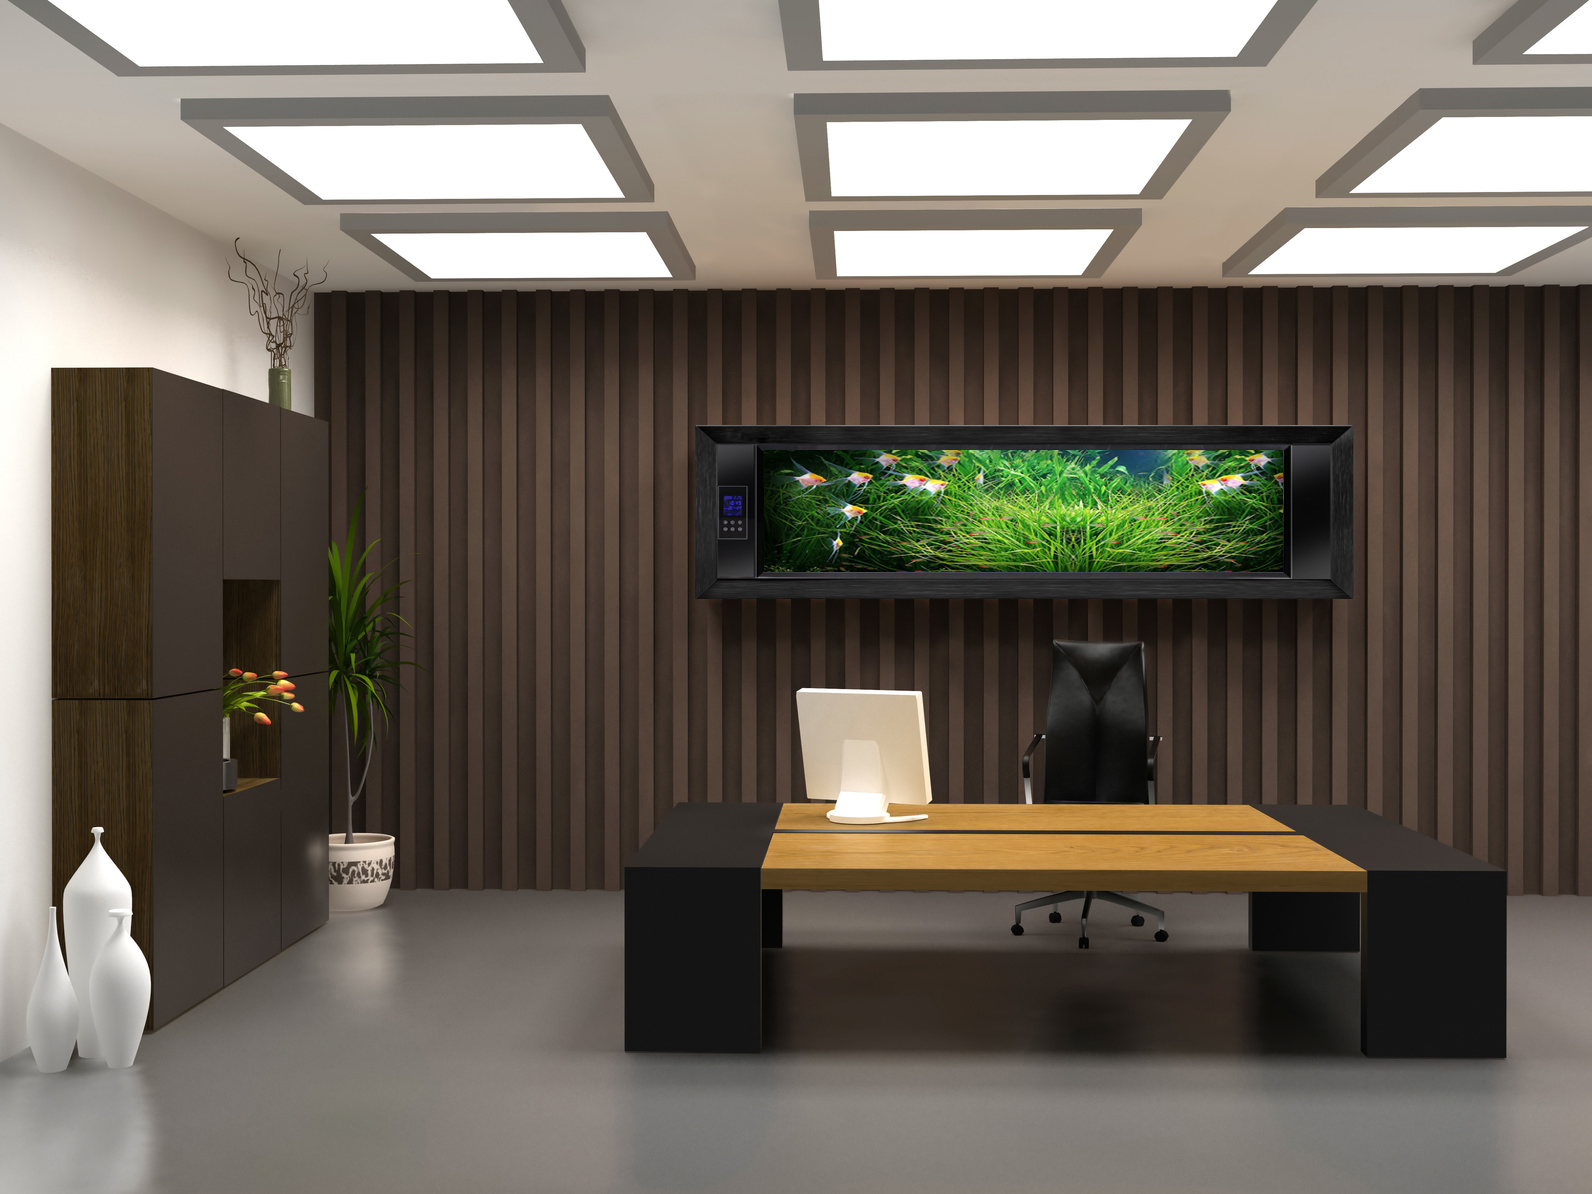 Elegant ceo office design bellisima for Elegant interior design